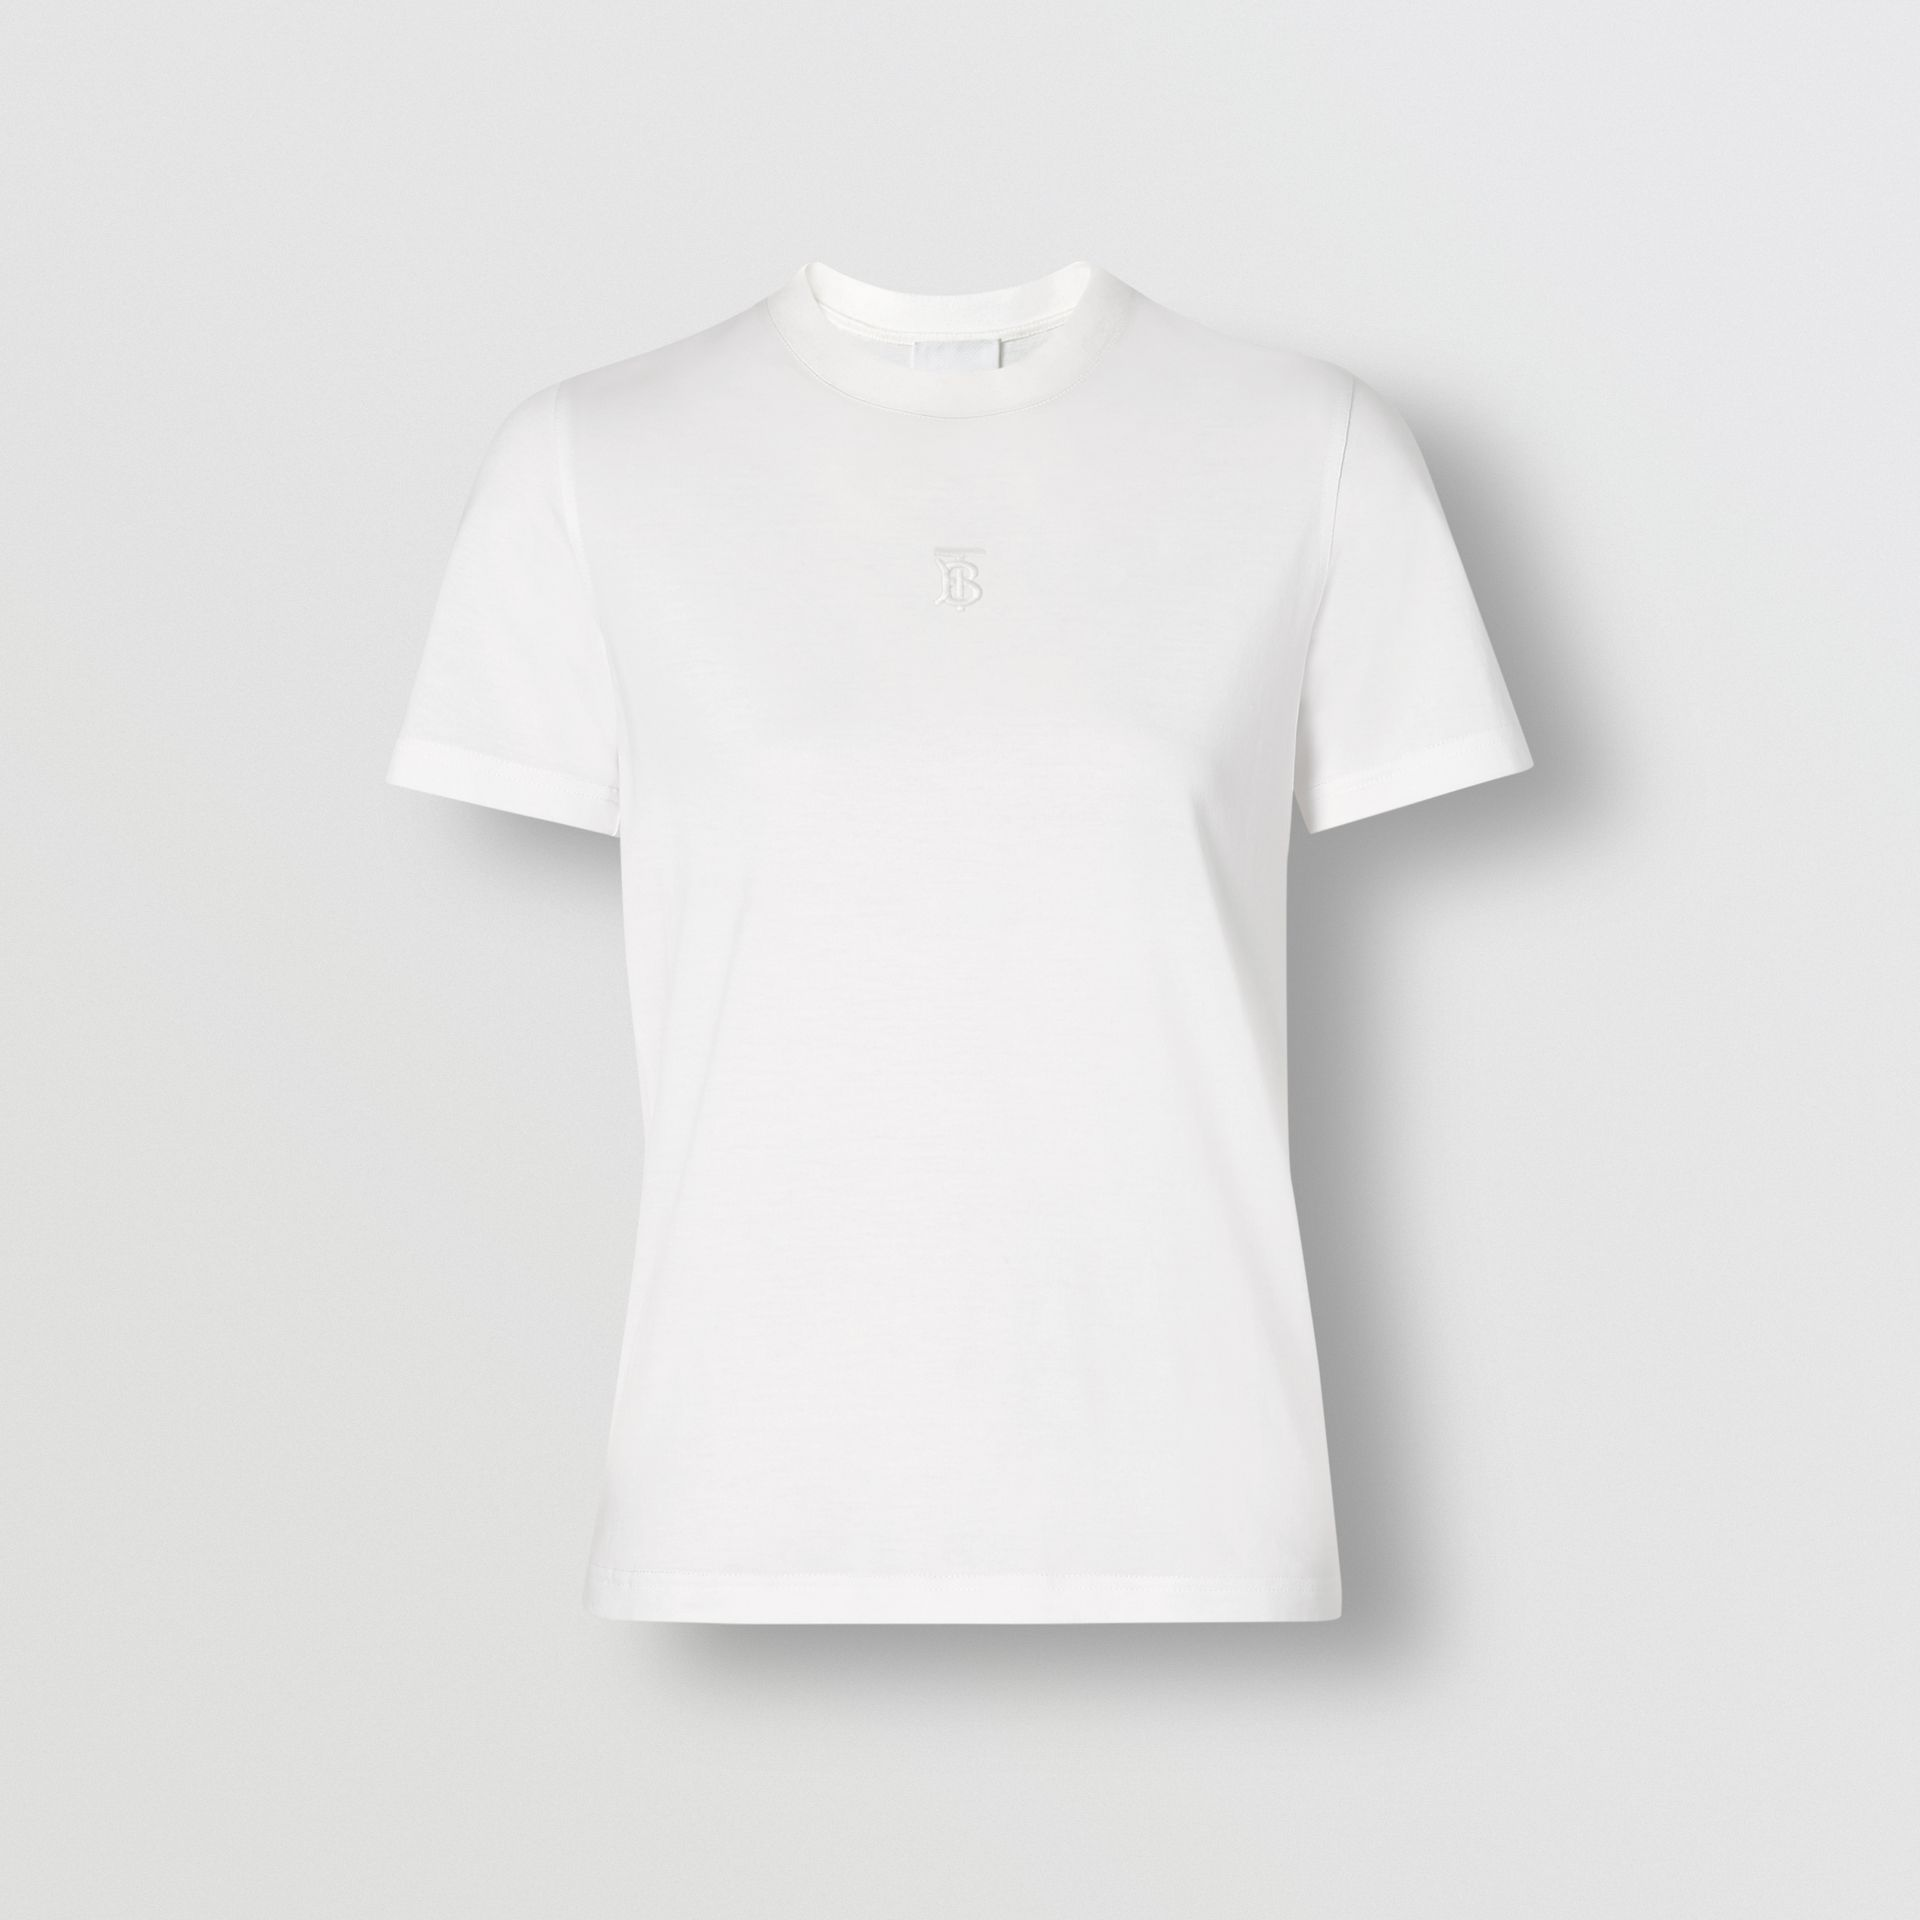 Monogram Motif Cotton T-shirt in White - Women | Burberry United Kingdom - gallery image 3